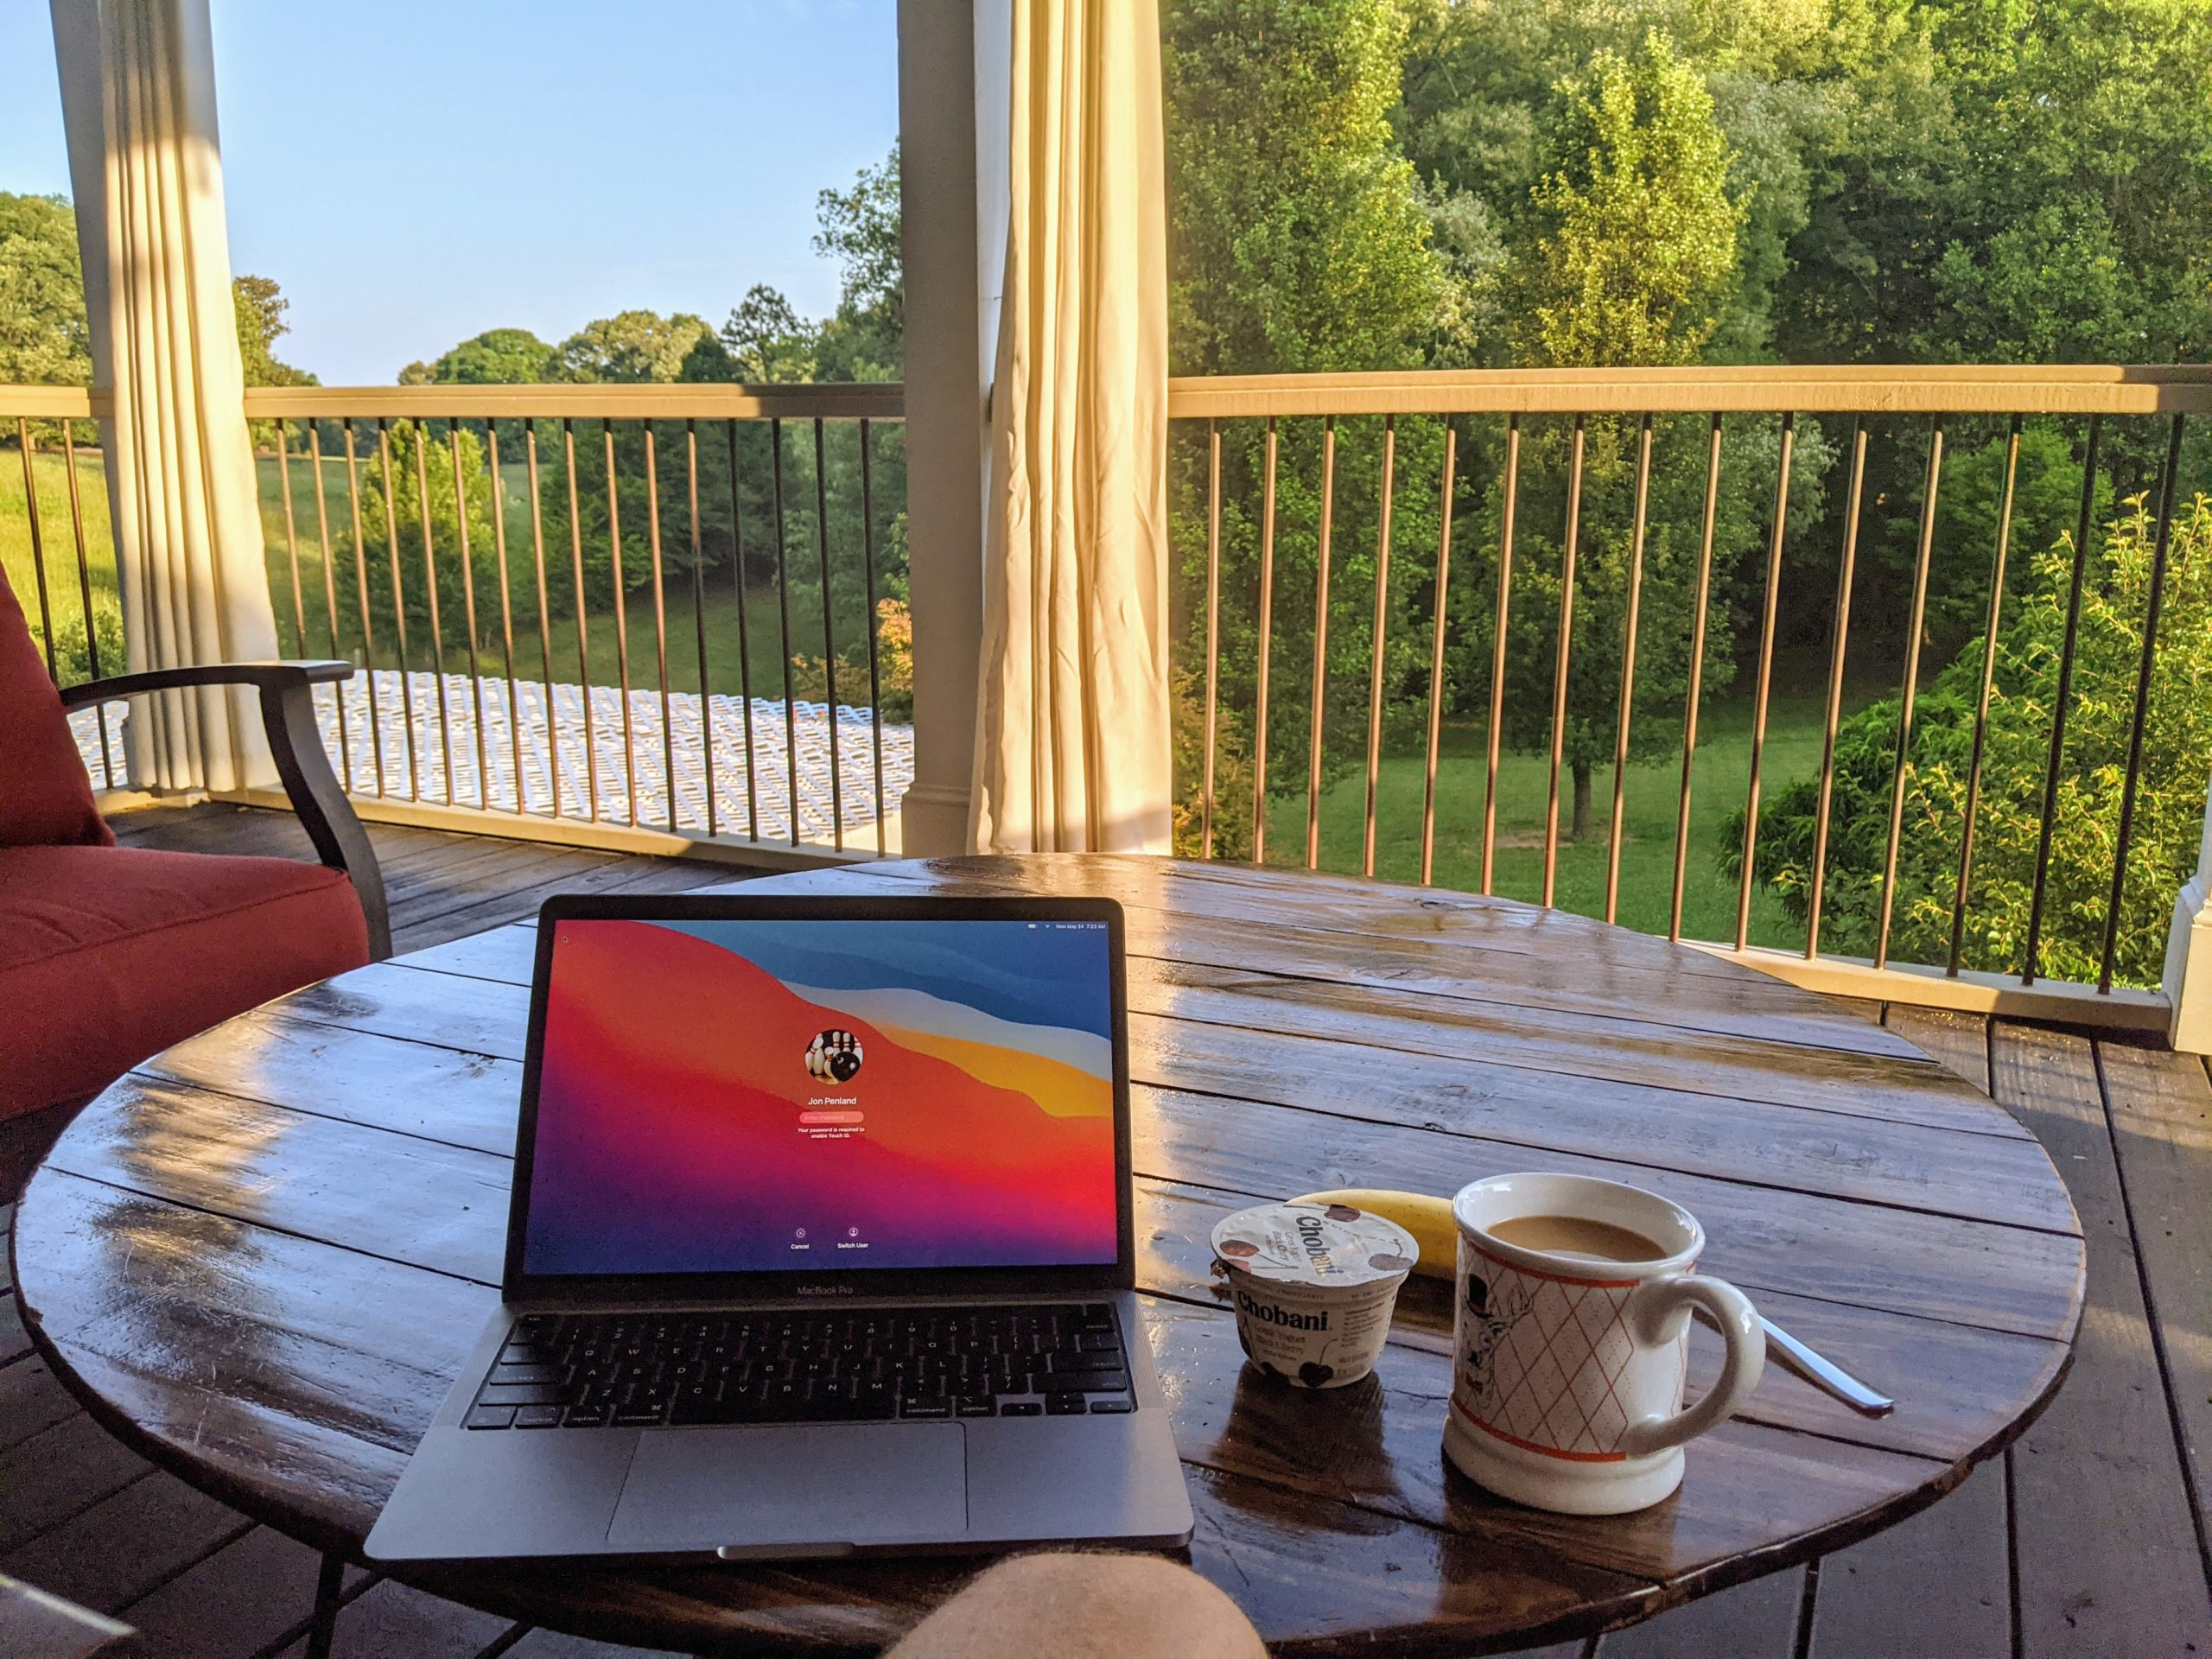 Laptop and light breakfast sitting on a table overlooking a park-like backyard